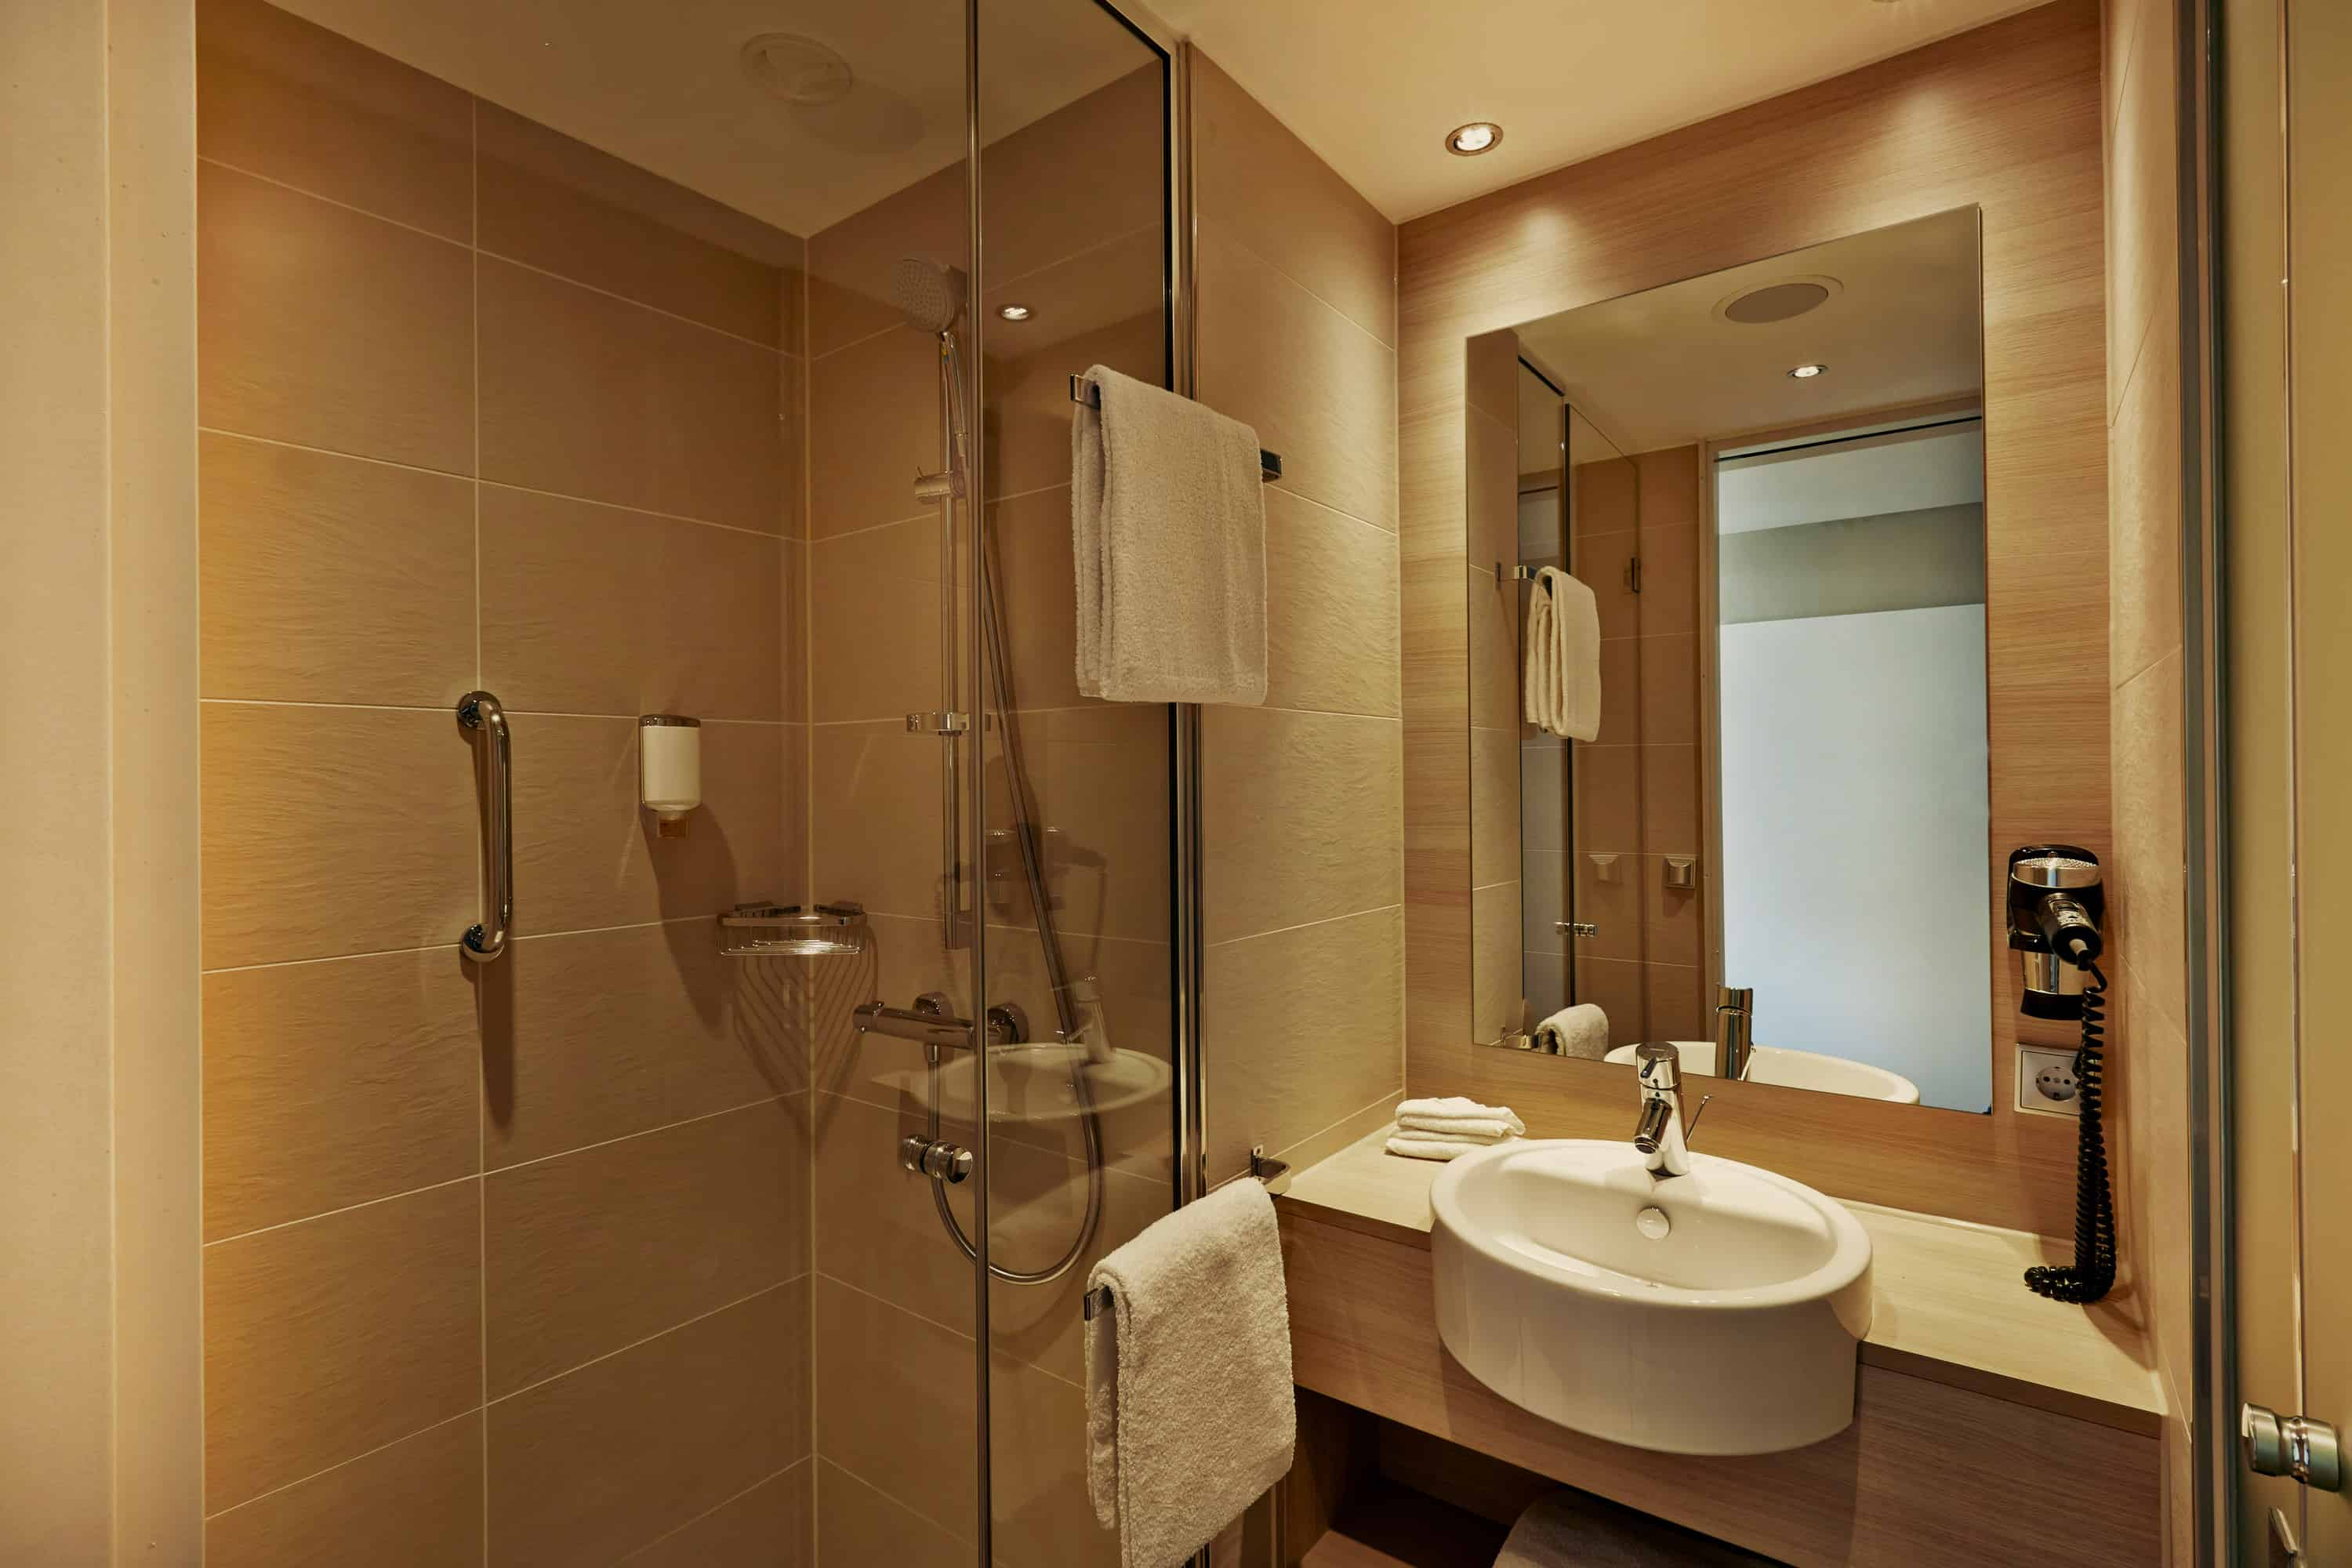 h-hotels_zimmer_bad_02_h2_hotel_muenchen_messe_L (max. 3000px) _209a189e